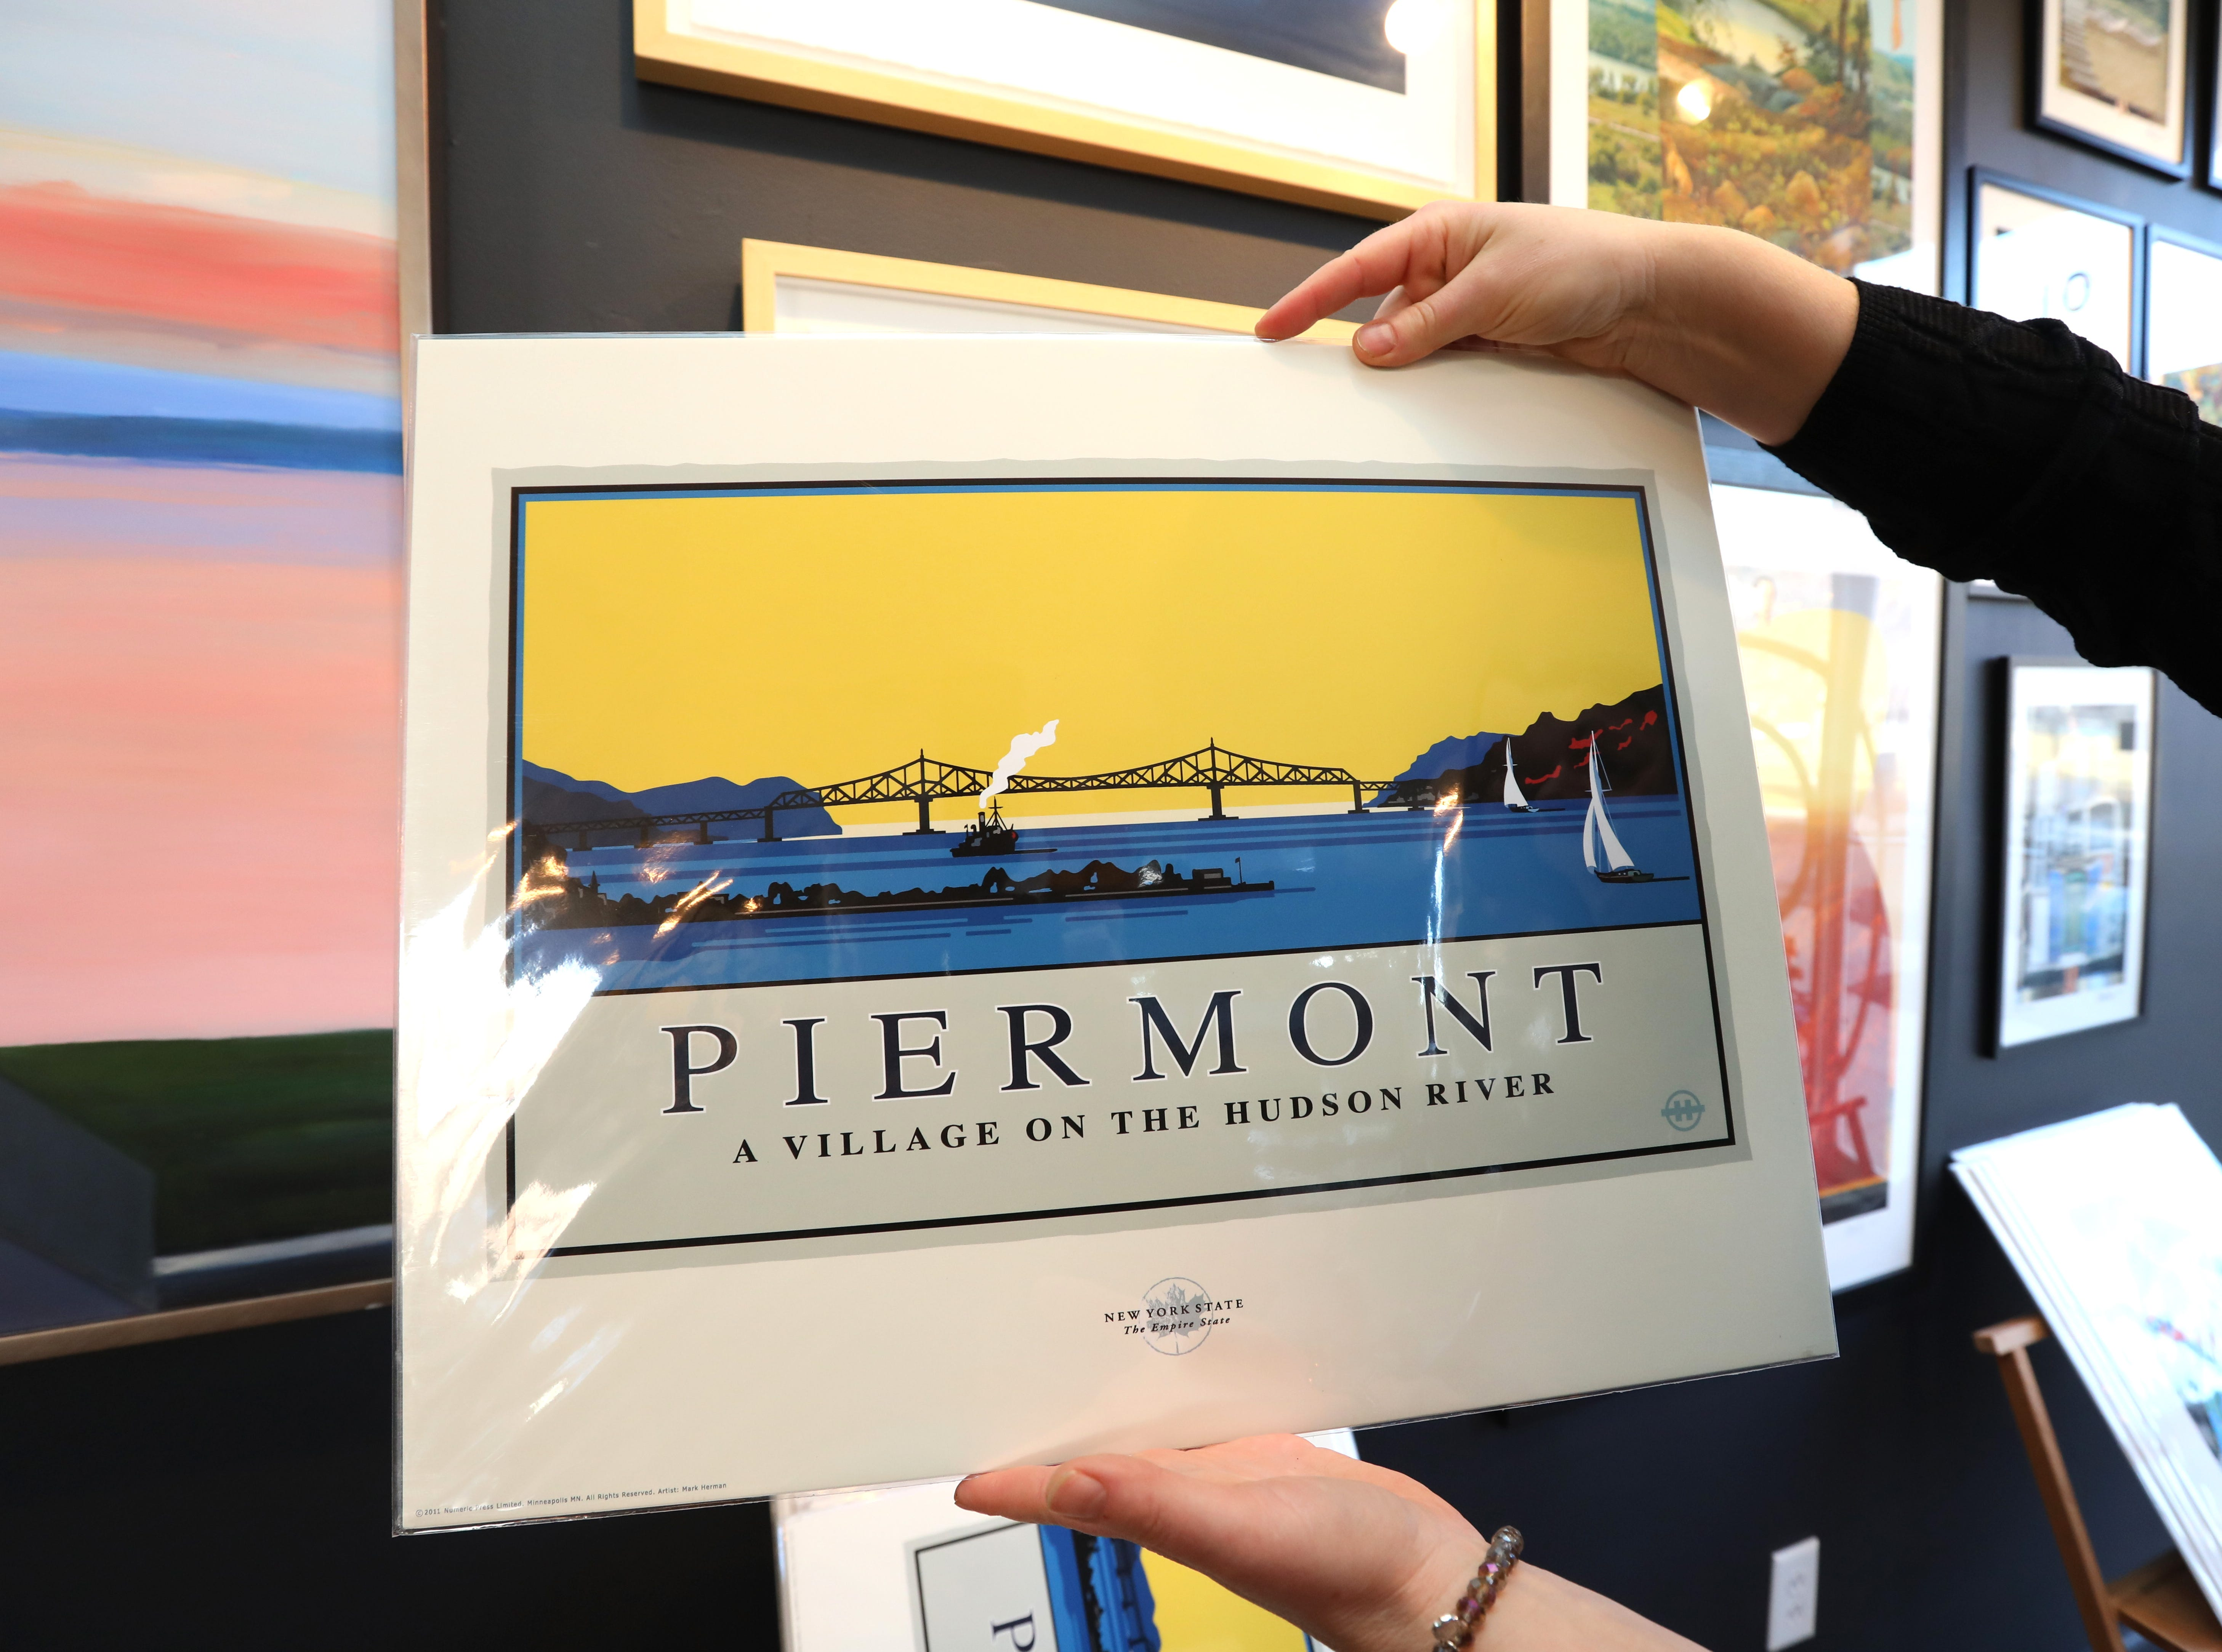 Poster of the Tappan Zee Bridge by Mark Herman at Piermont Straus in Piermont Jan. 9, 2019.